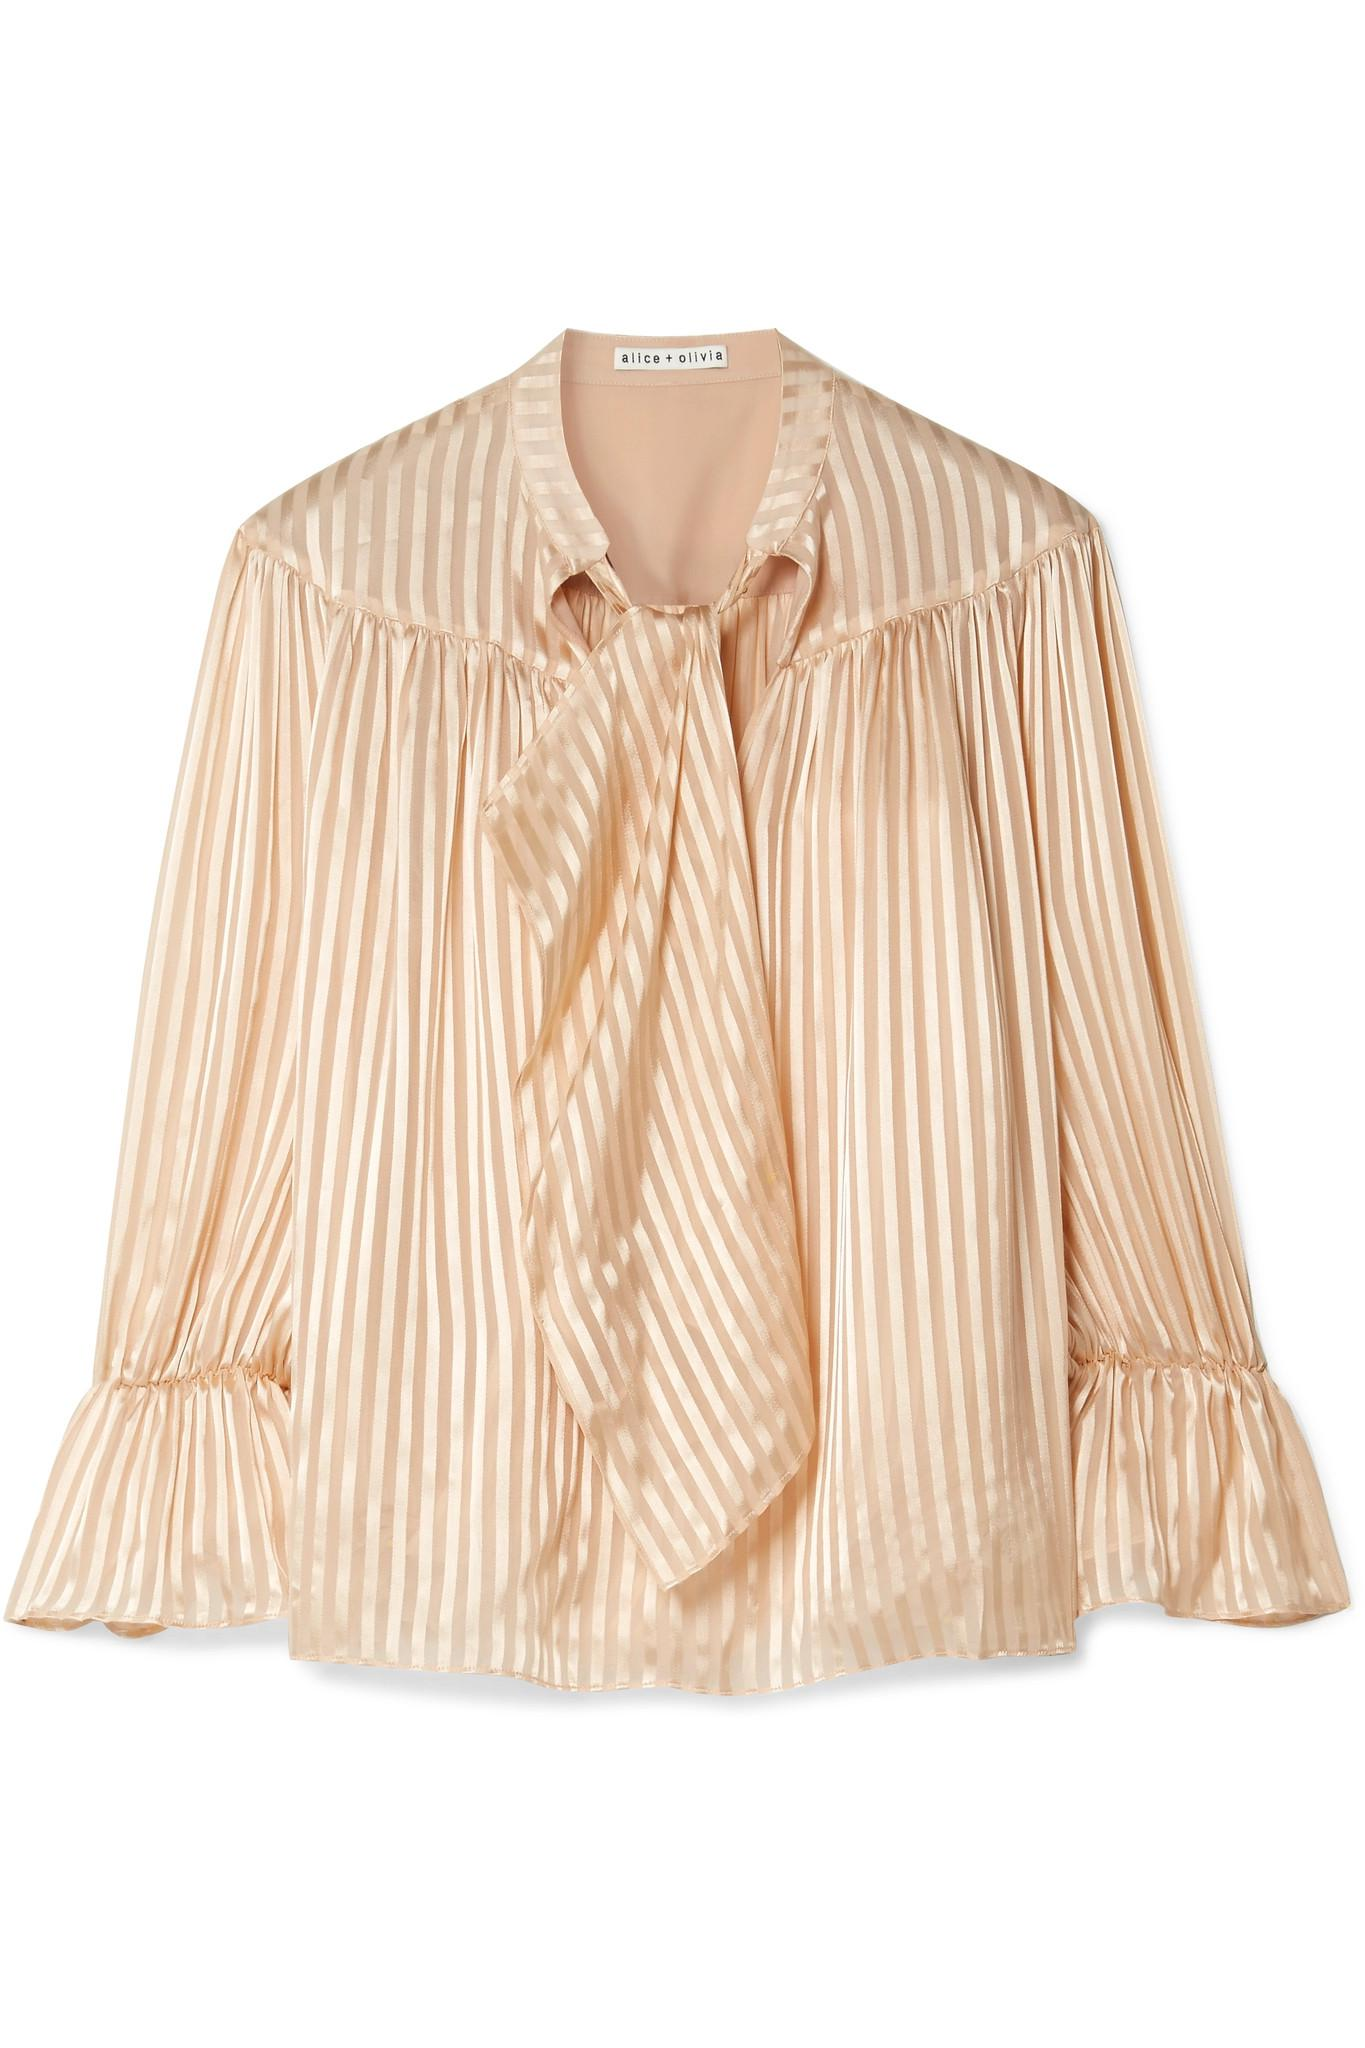 Danika Pussy-bow Striped Satin And Chiffon Blouse - Sand Alice & Olivia Footlocker Sale Online Clearance Wholesale Price EbFR3X37dU